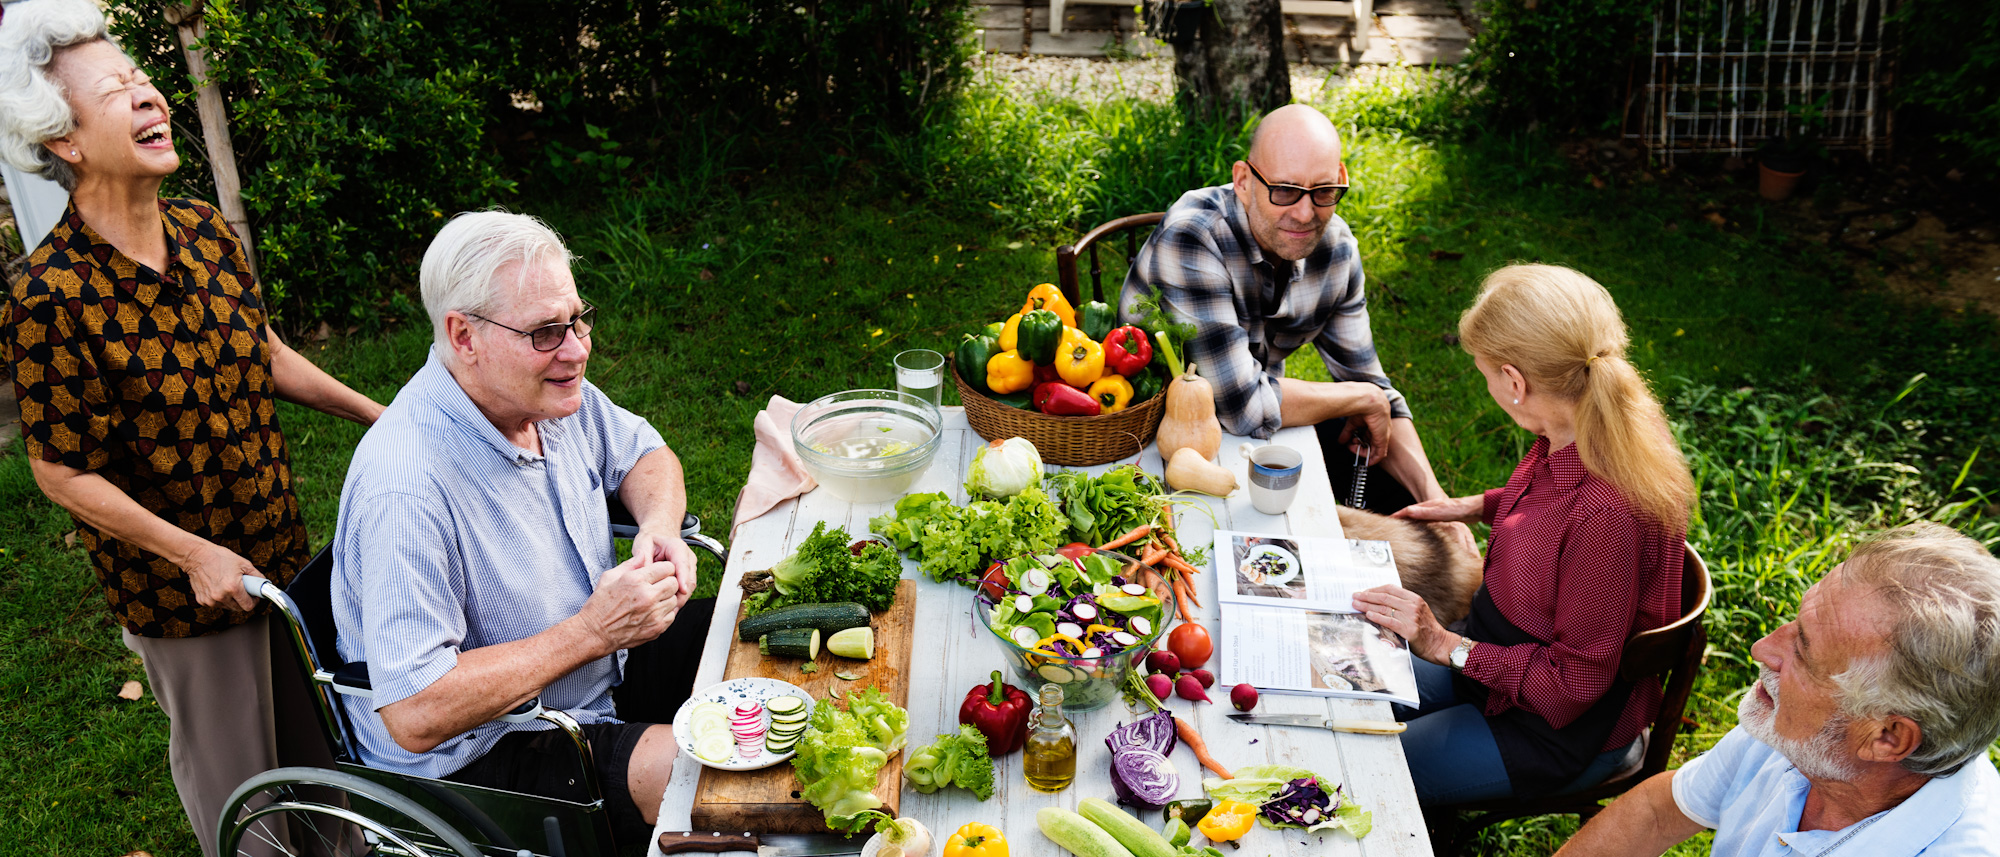 Elderly's party outside with healthy food